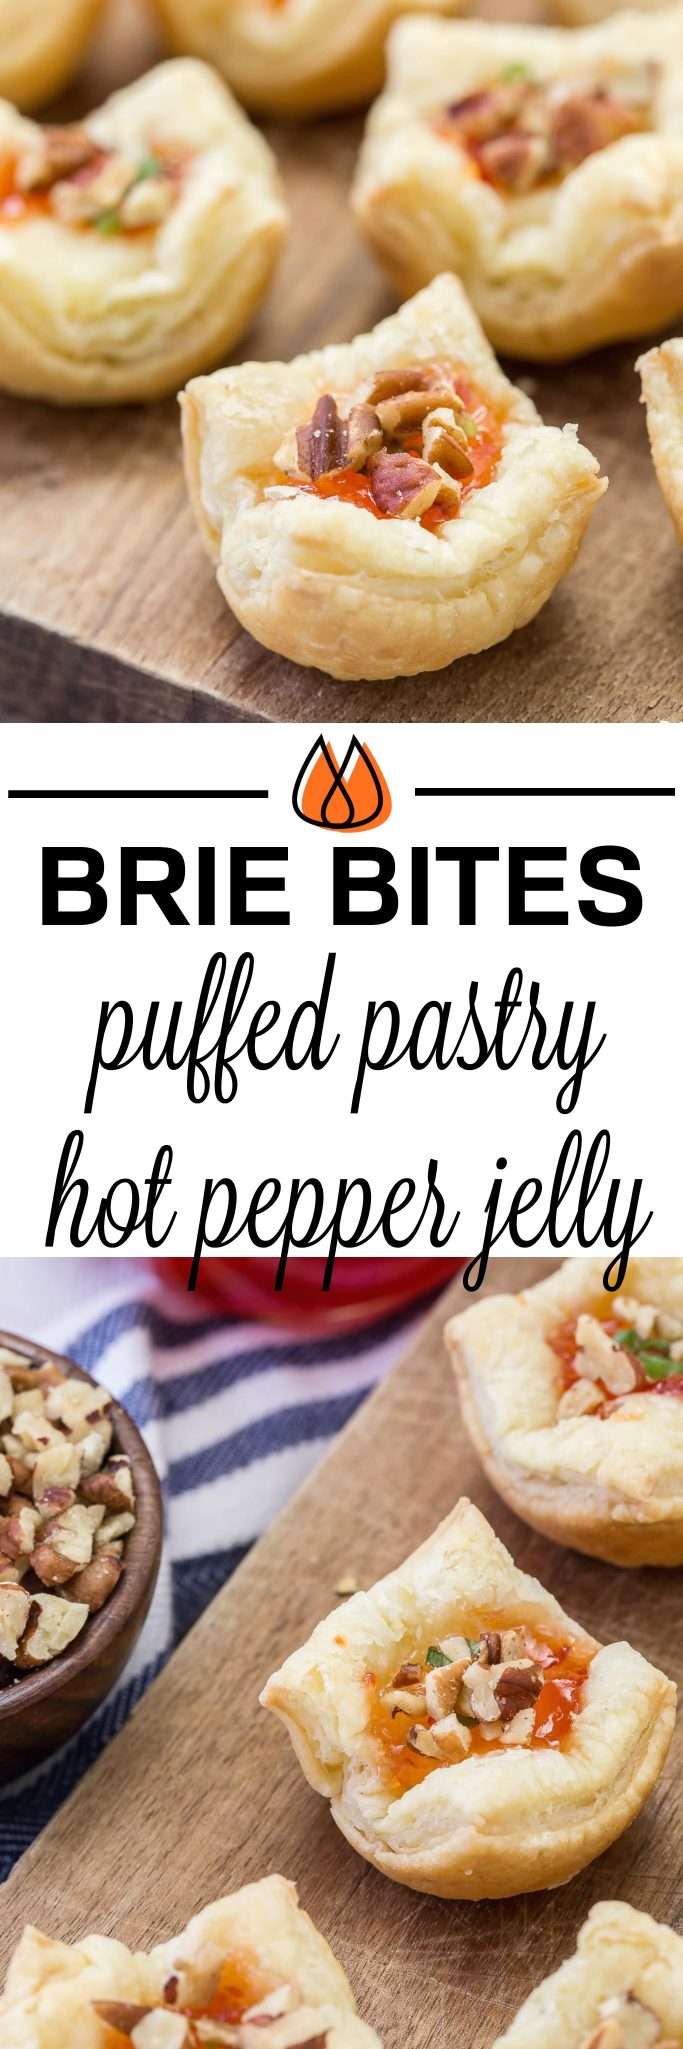 These Brie Pepper Jelly Bites are a great recipe to have on hand for the holidays!  You will love the flaky crust with brie and pepper jelly nestled inside.  #appetizer #puffedpastry #brie